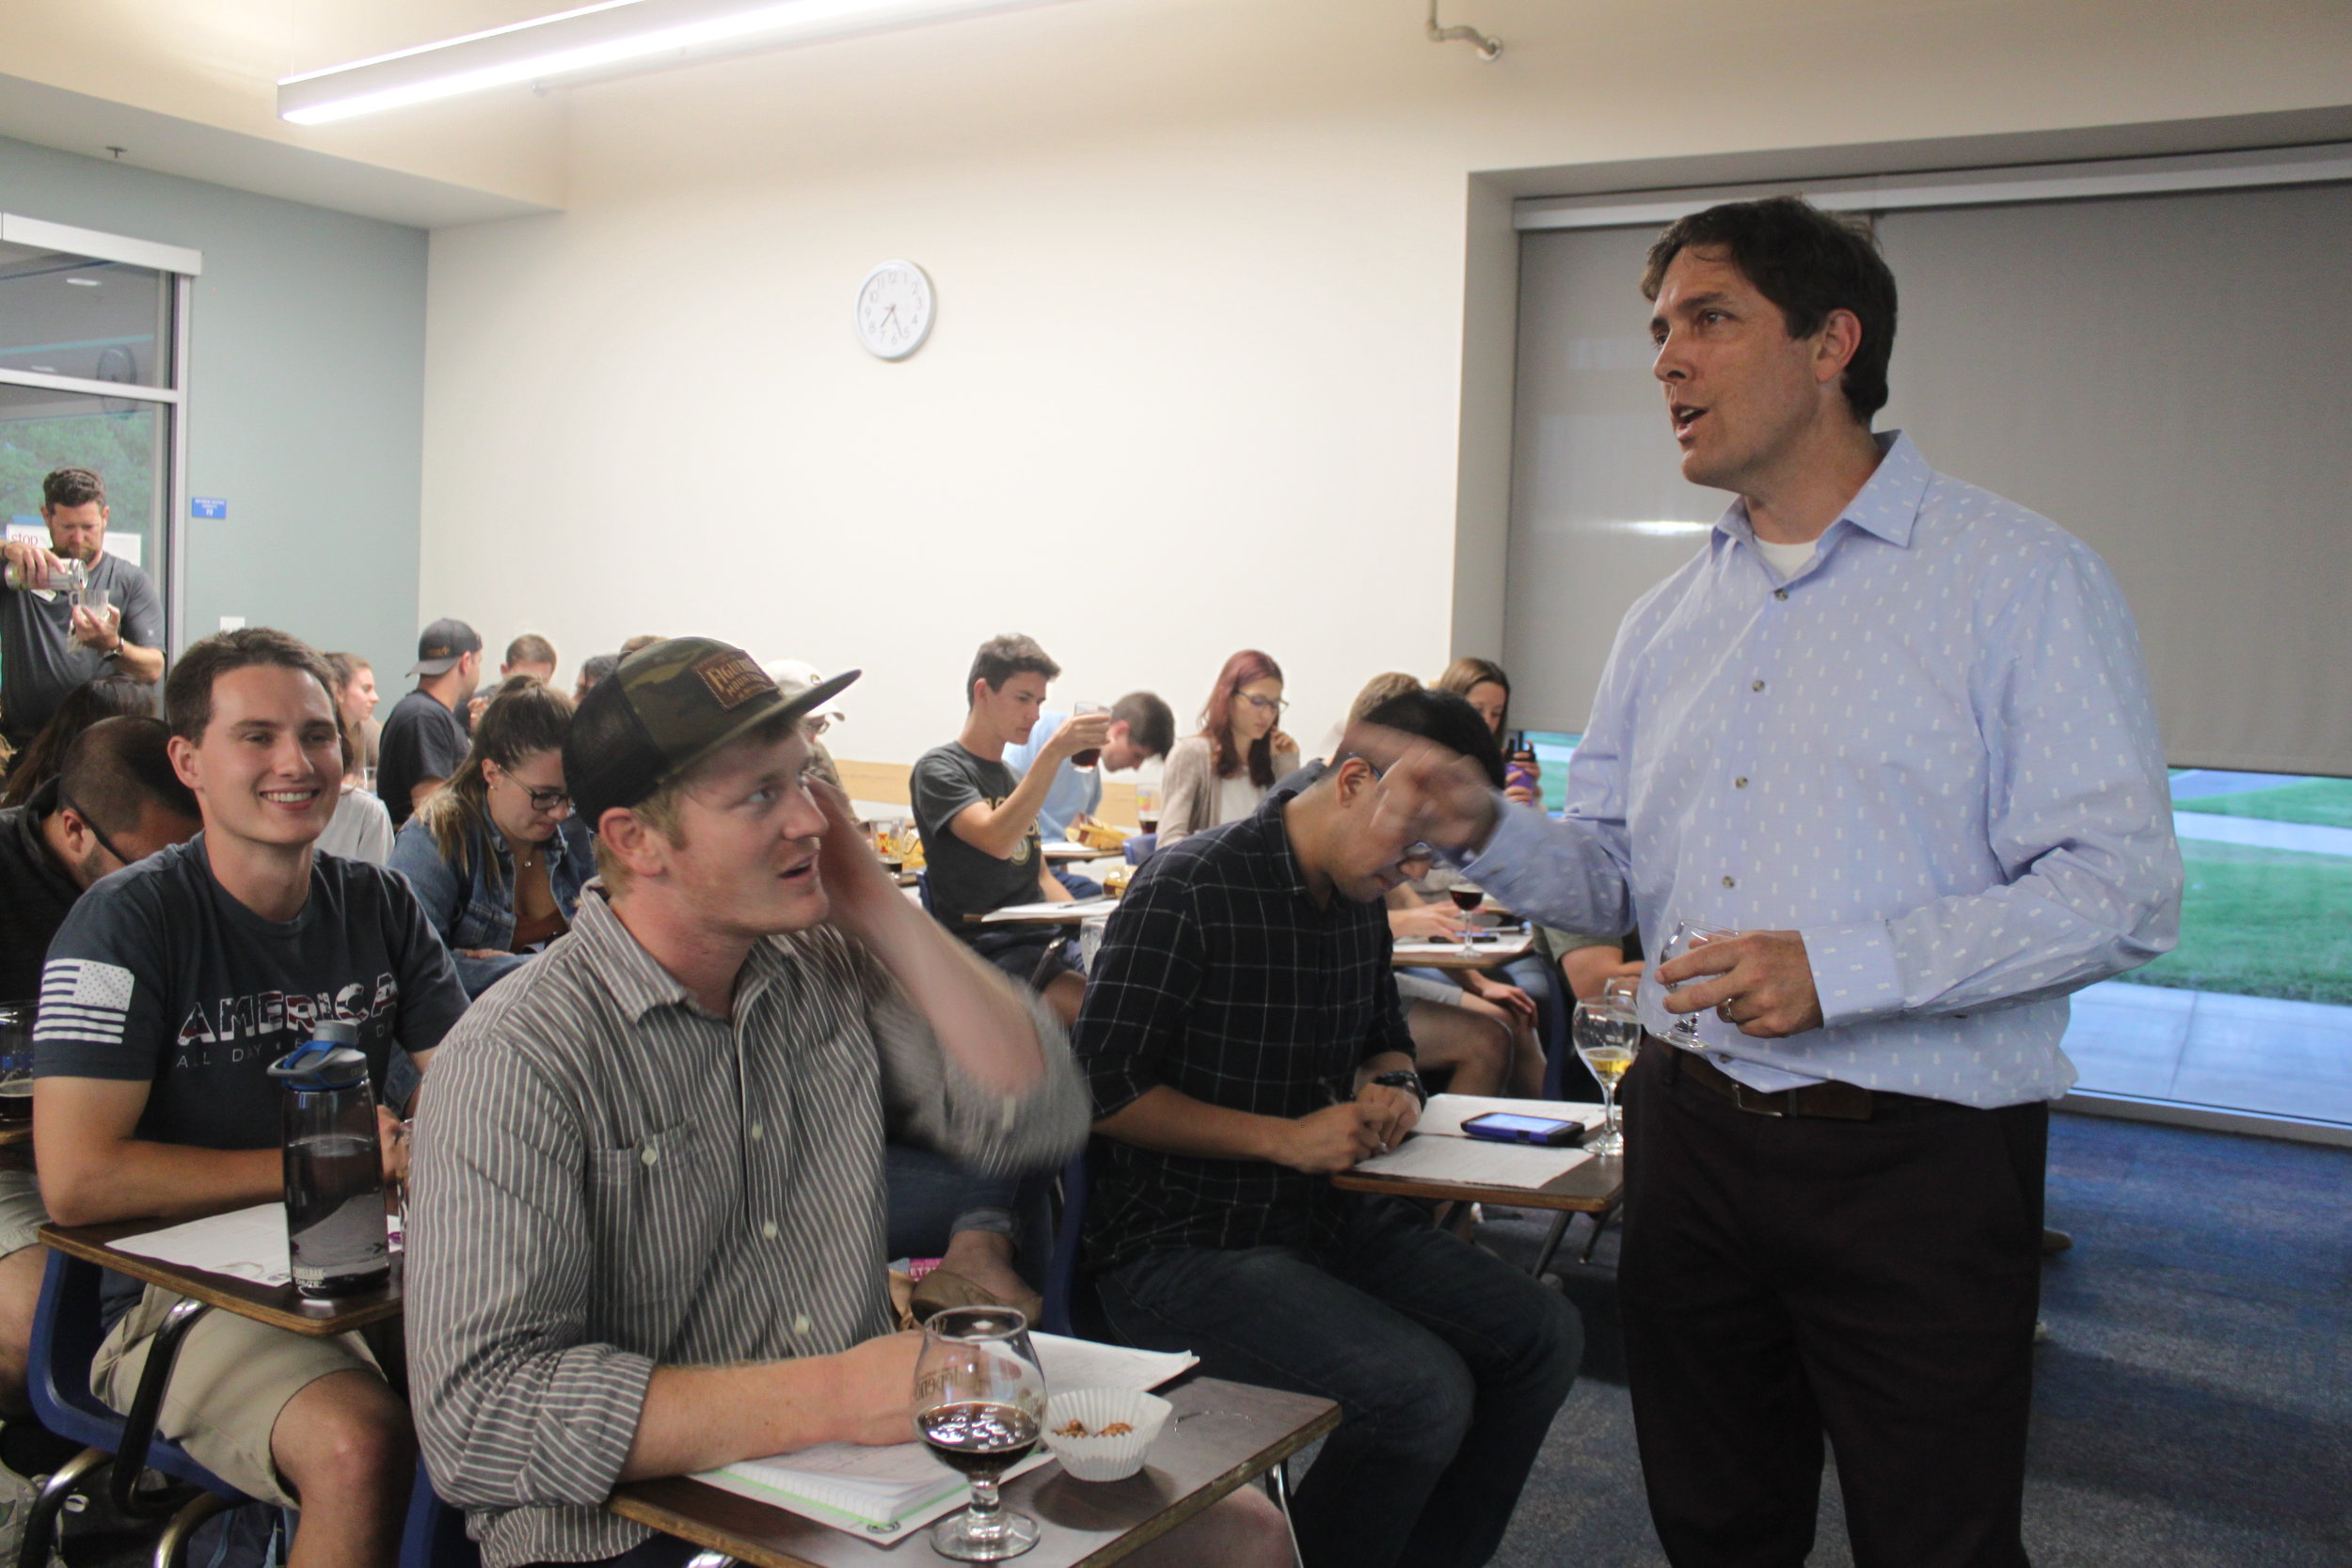 Religious Studies alumnus Brian Yaeger answers questions from students in between beer tastings during his Beer 101 class, offered by UCSB's Recreation Department.